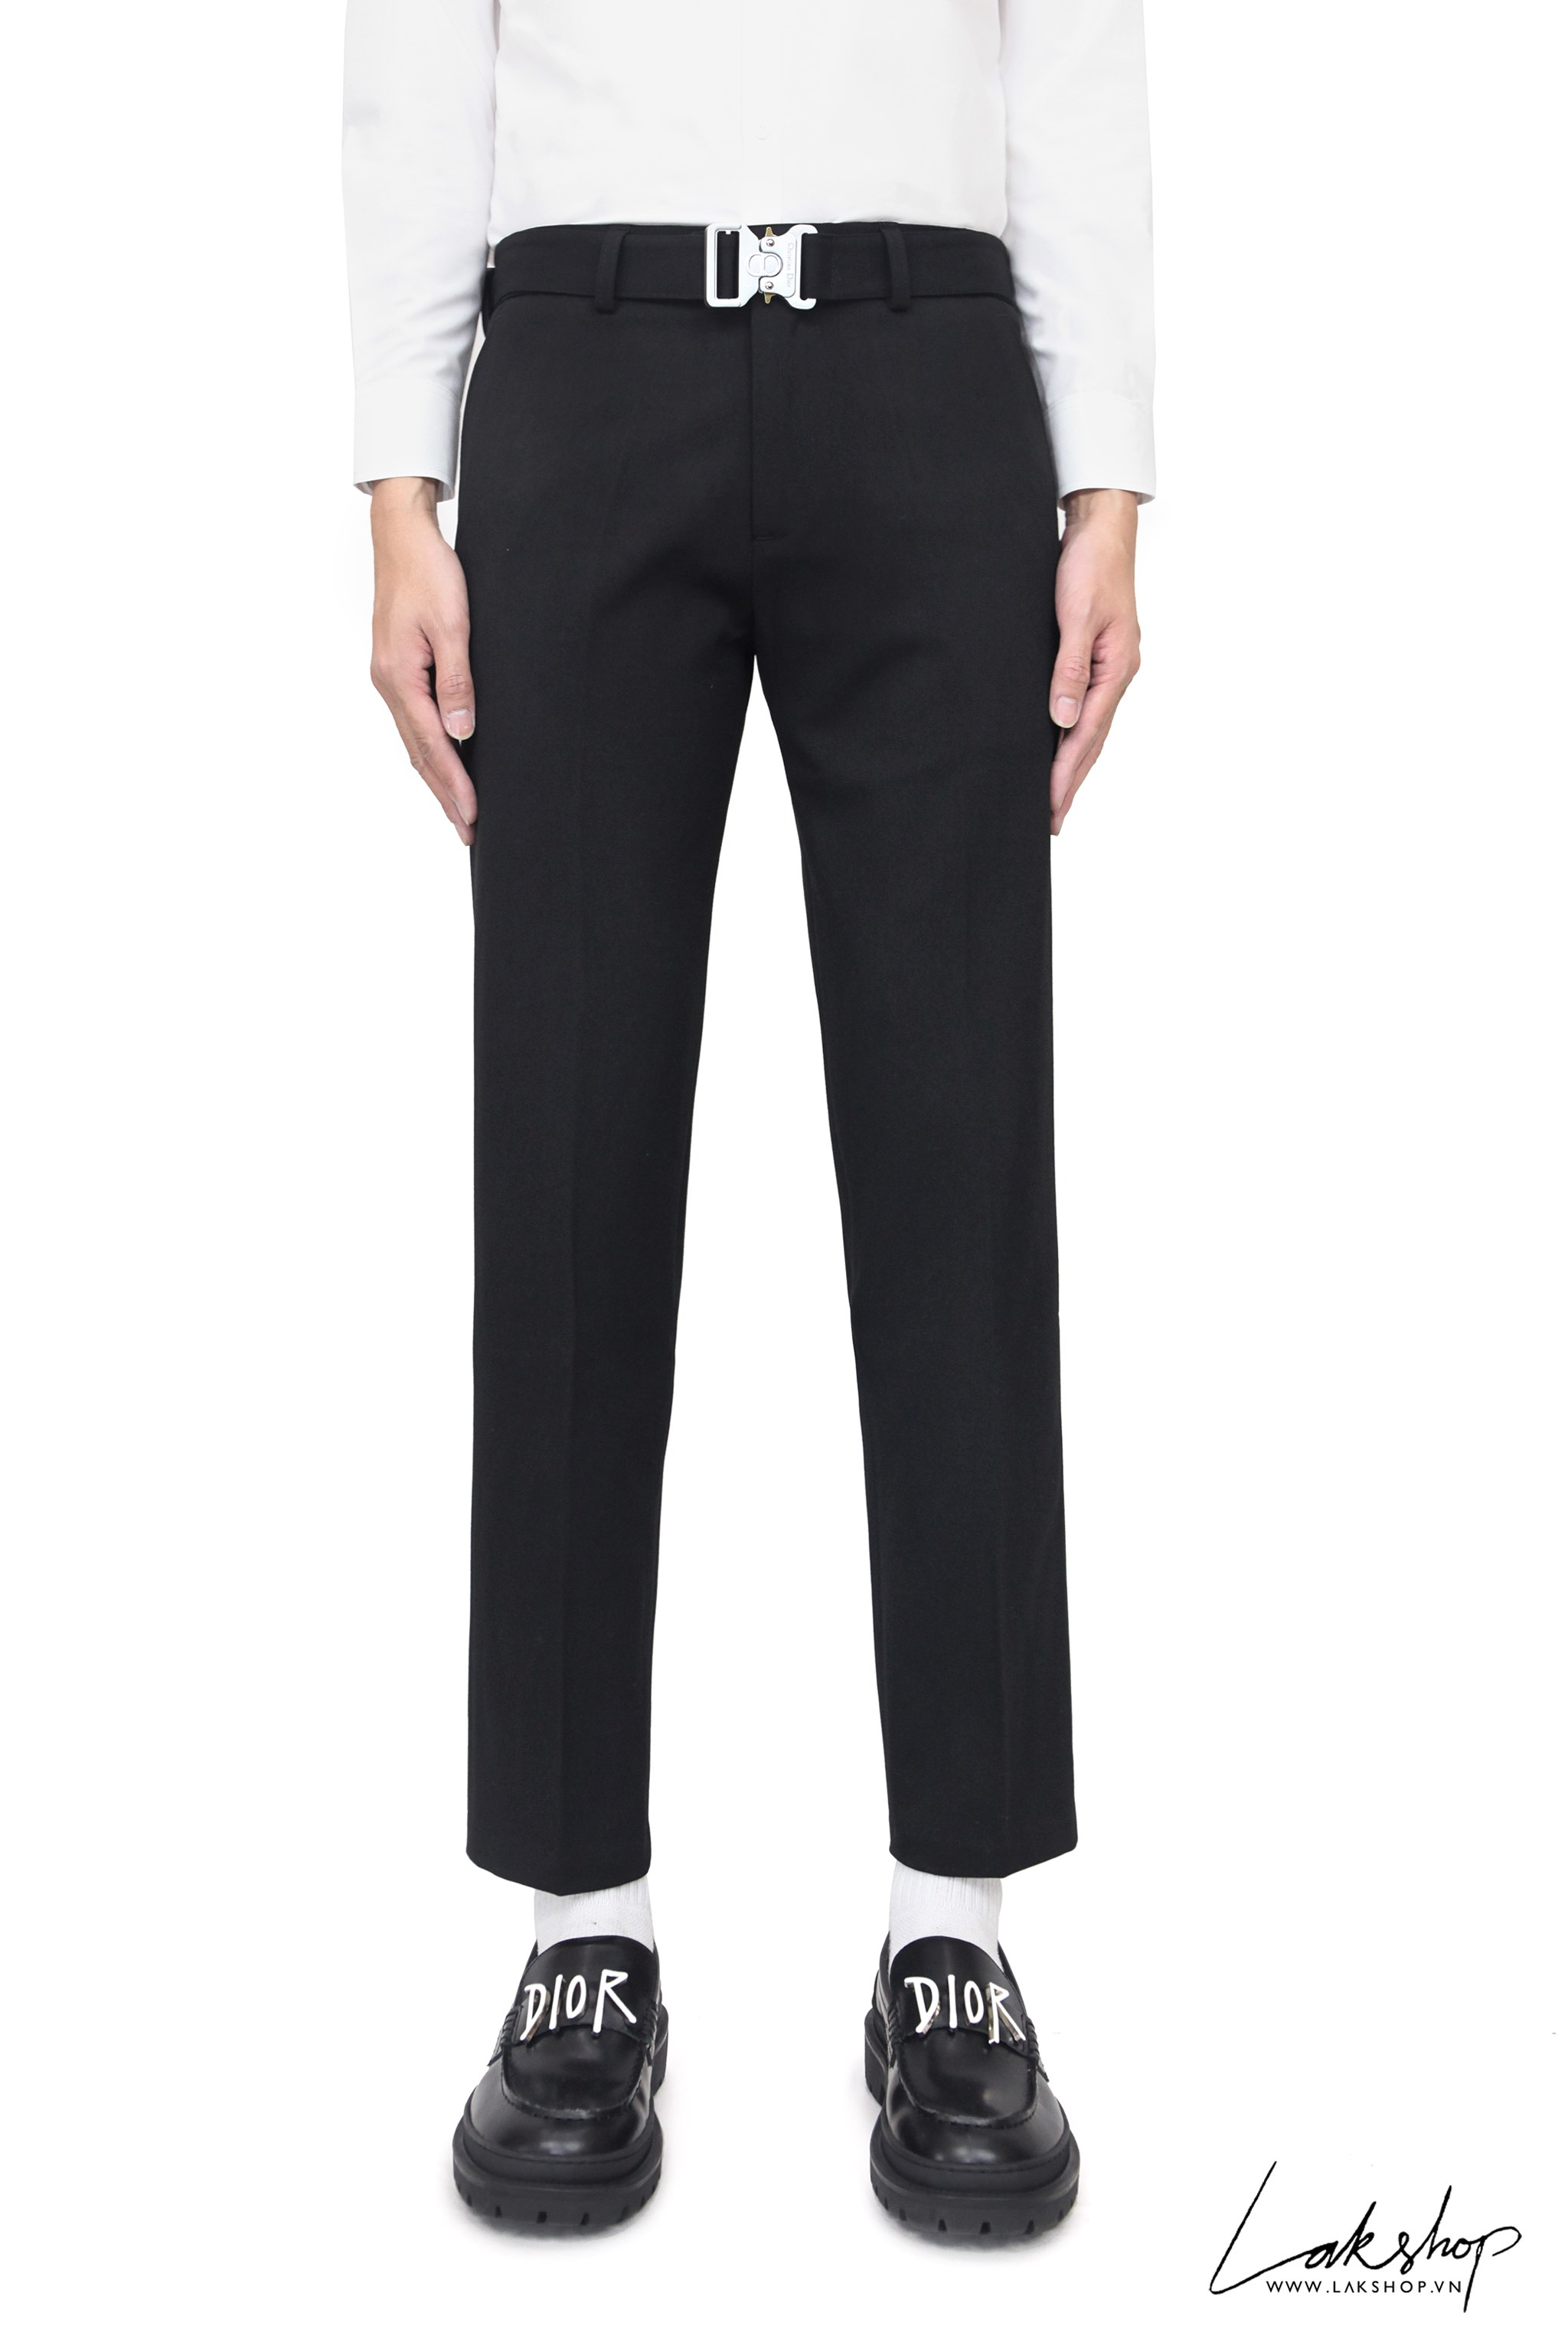 Dior Pants With Removable Harness Buckle Belt cv1